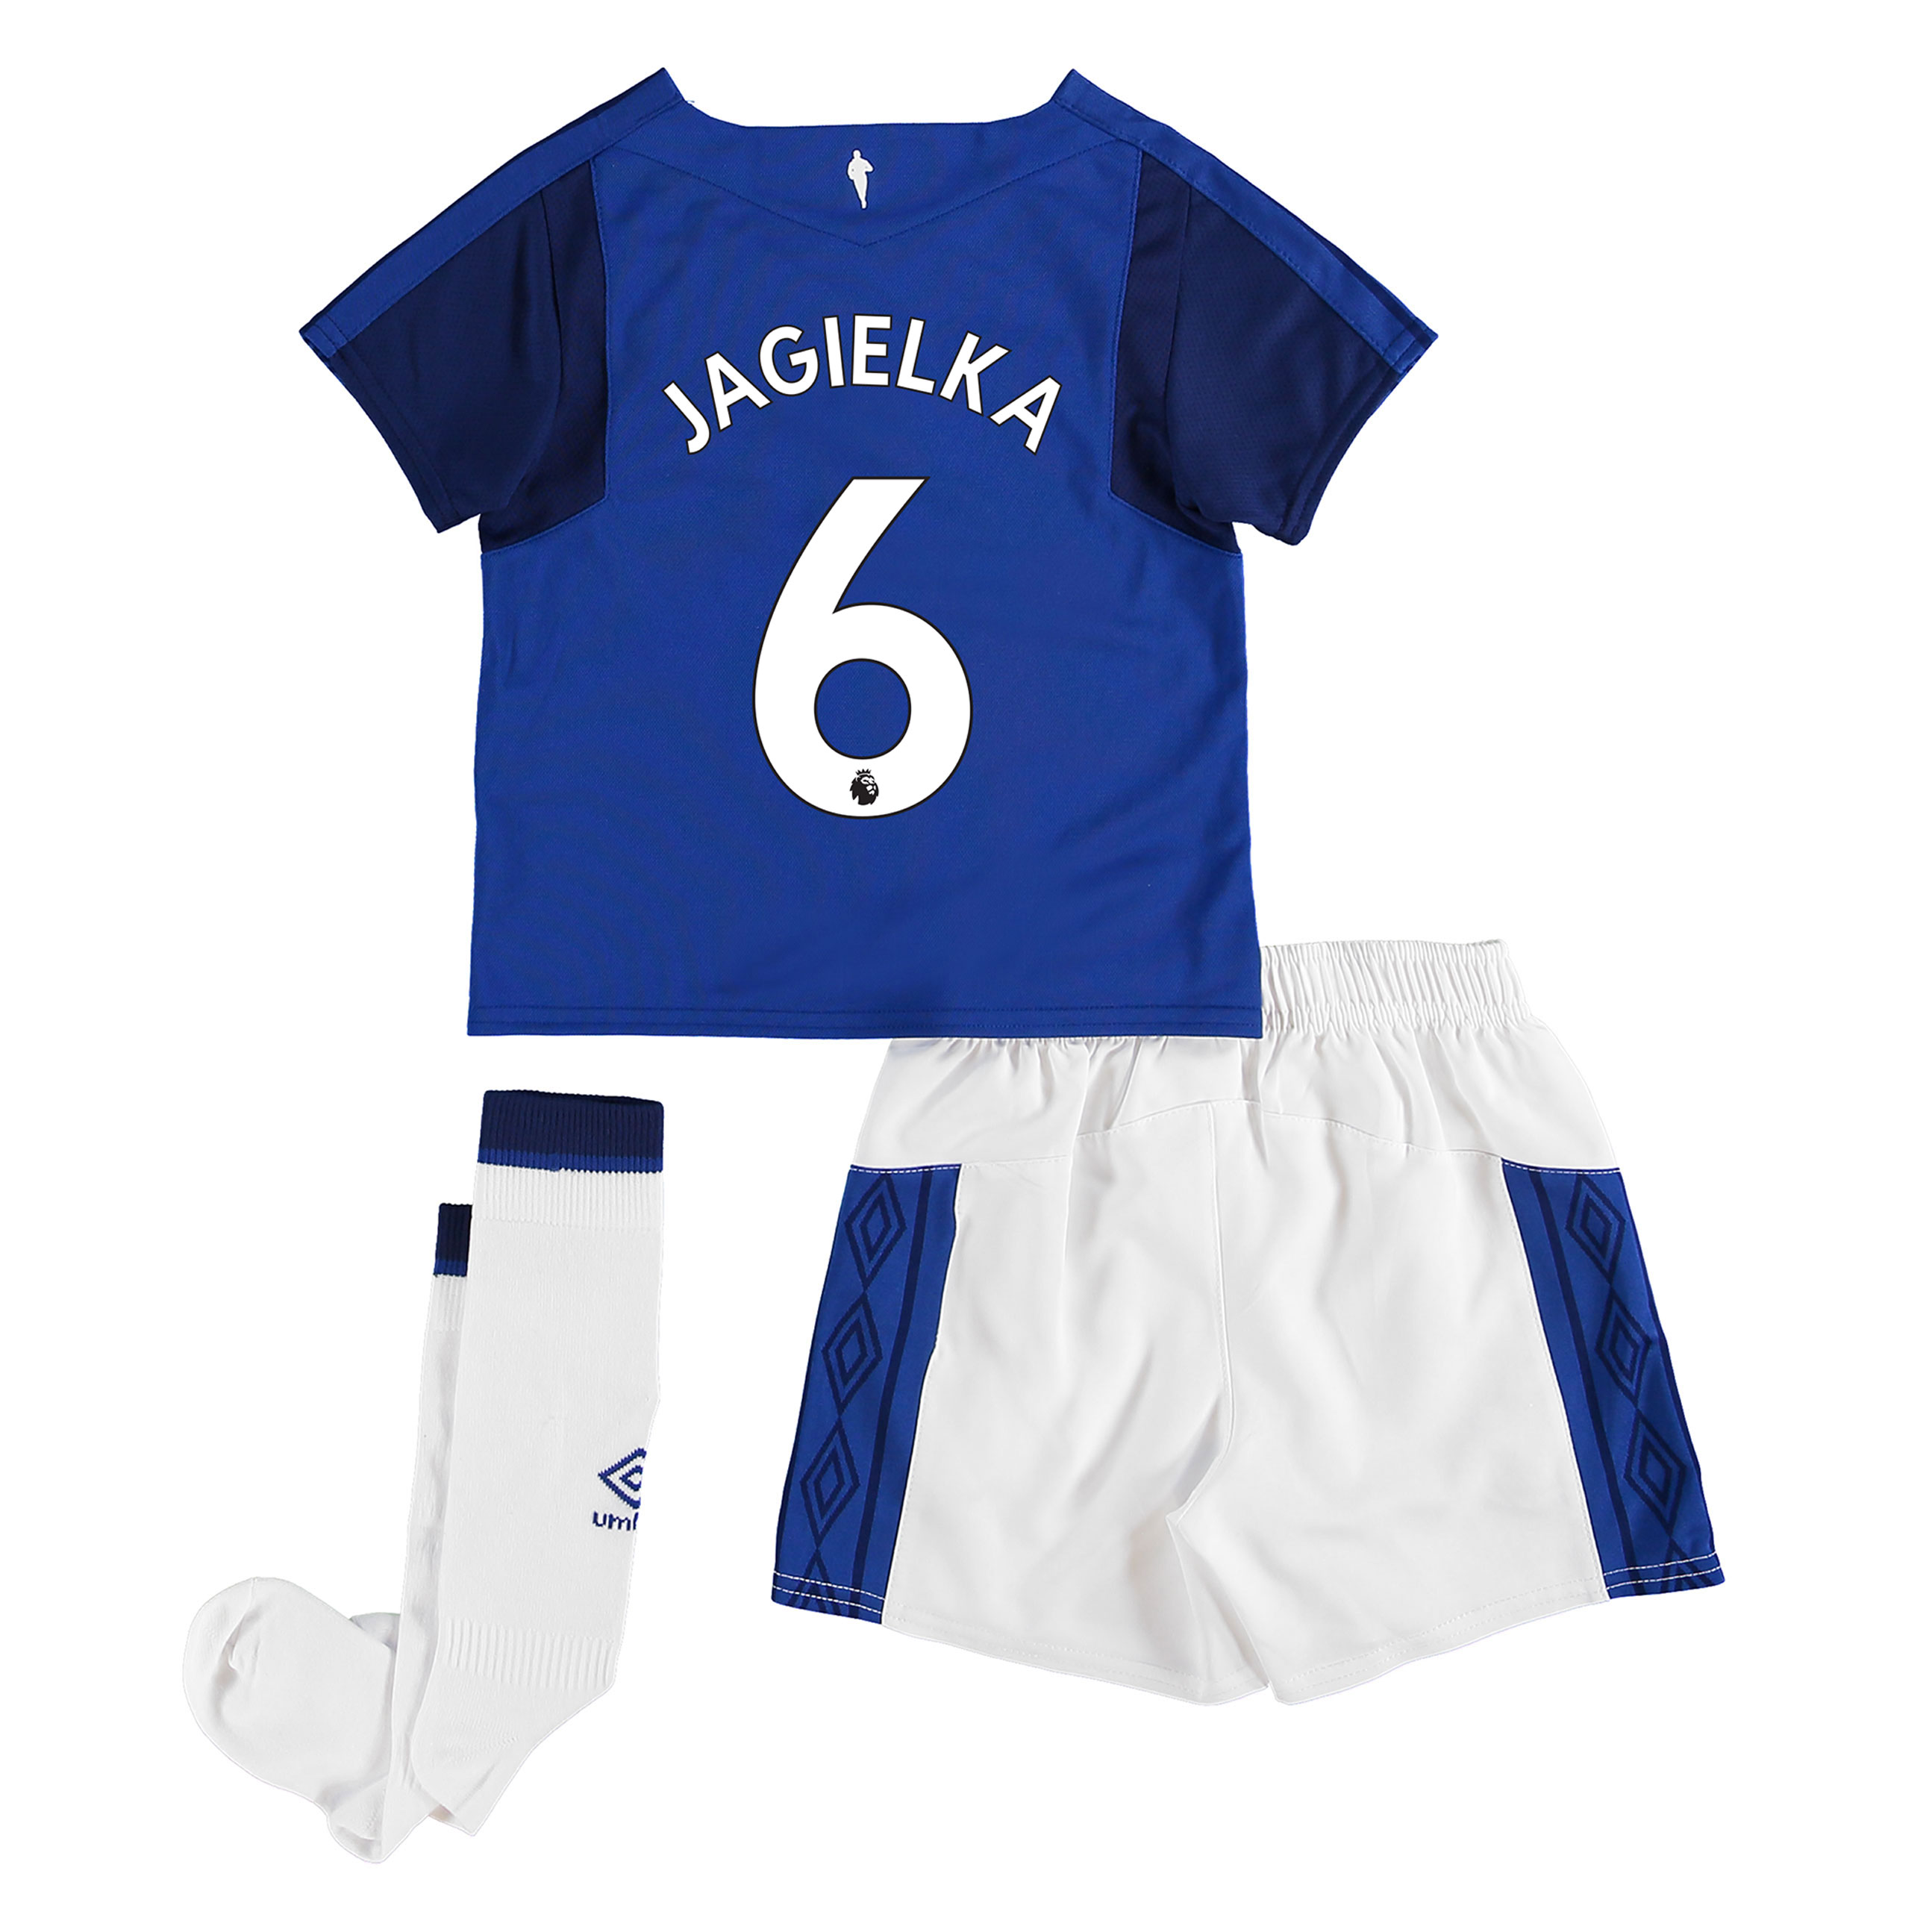 Everton Home Infant Kit 2017/18 with Jagielka 6 printing